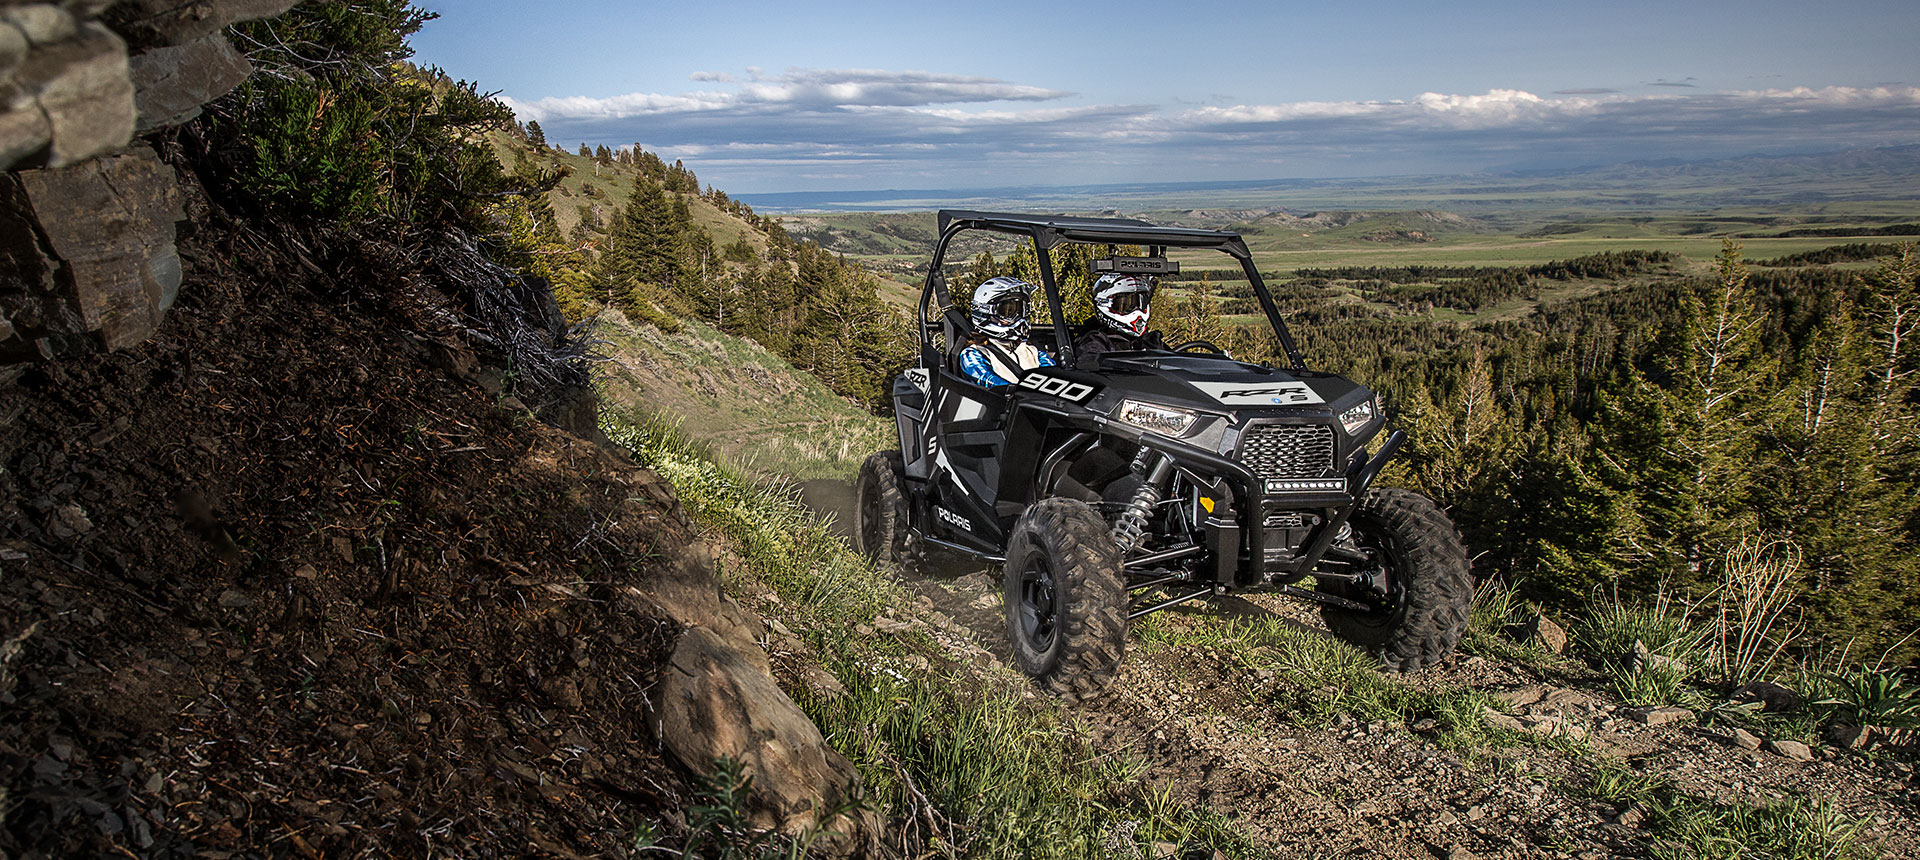 2019 Polaris RZR S 900 in Eastland, Texas